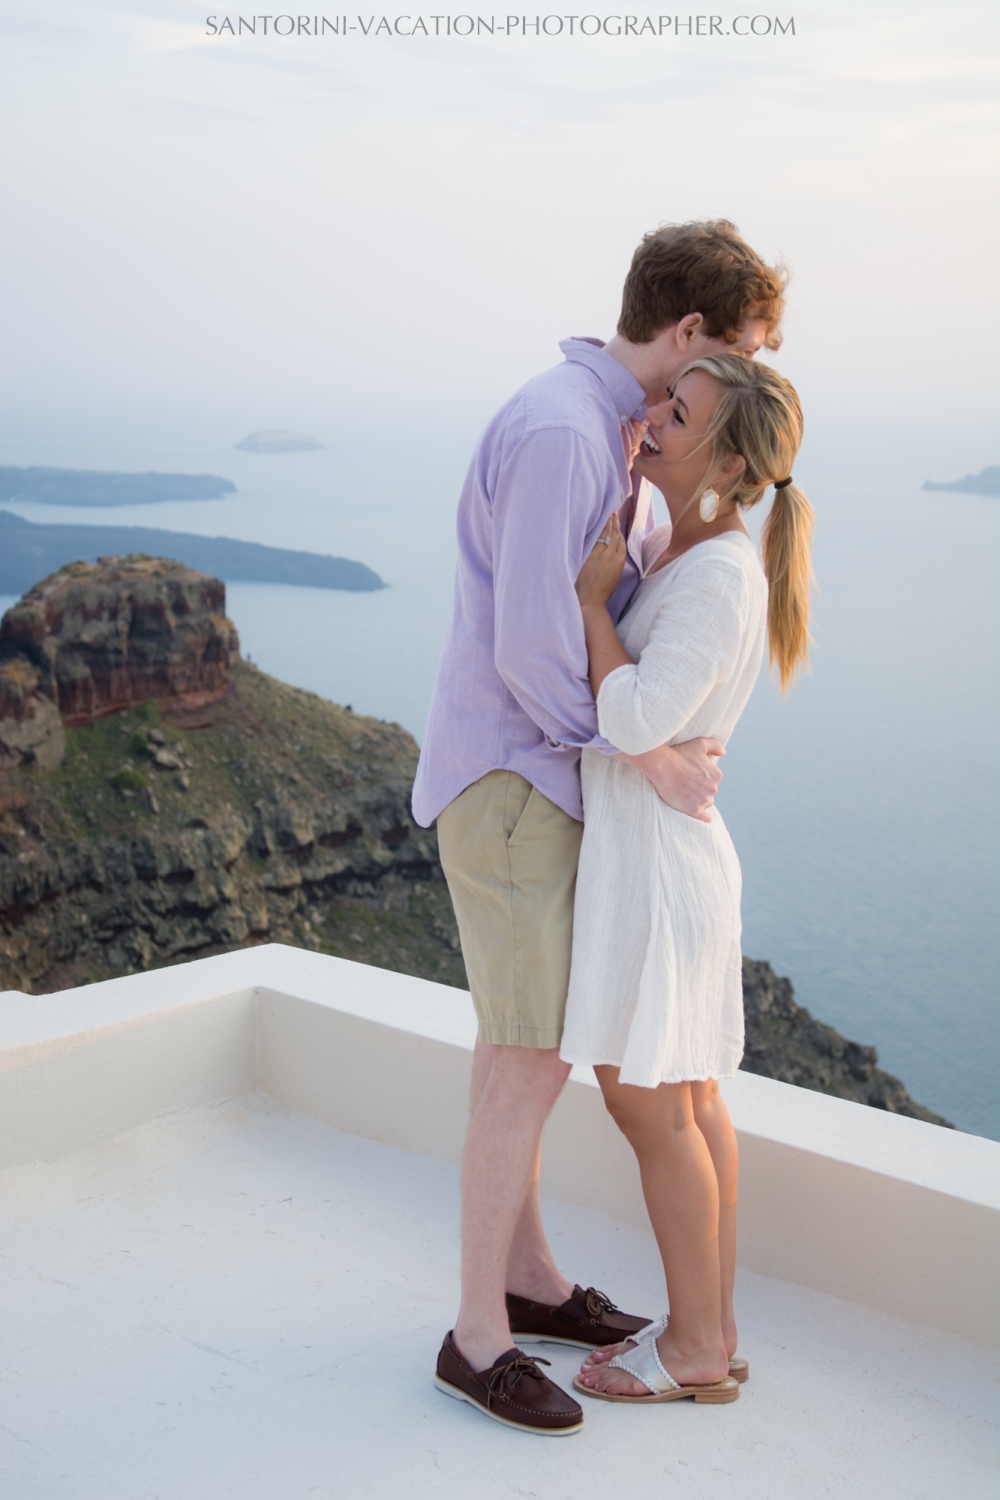 Santorini-Sunset-photo-shoot-Post-Wedding-Portrait-Shoot-001